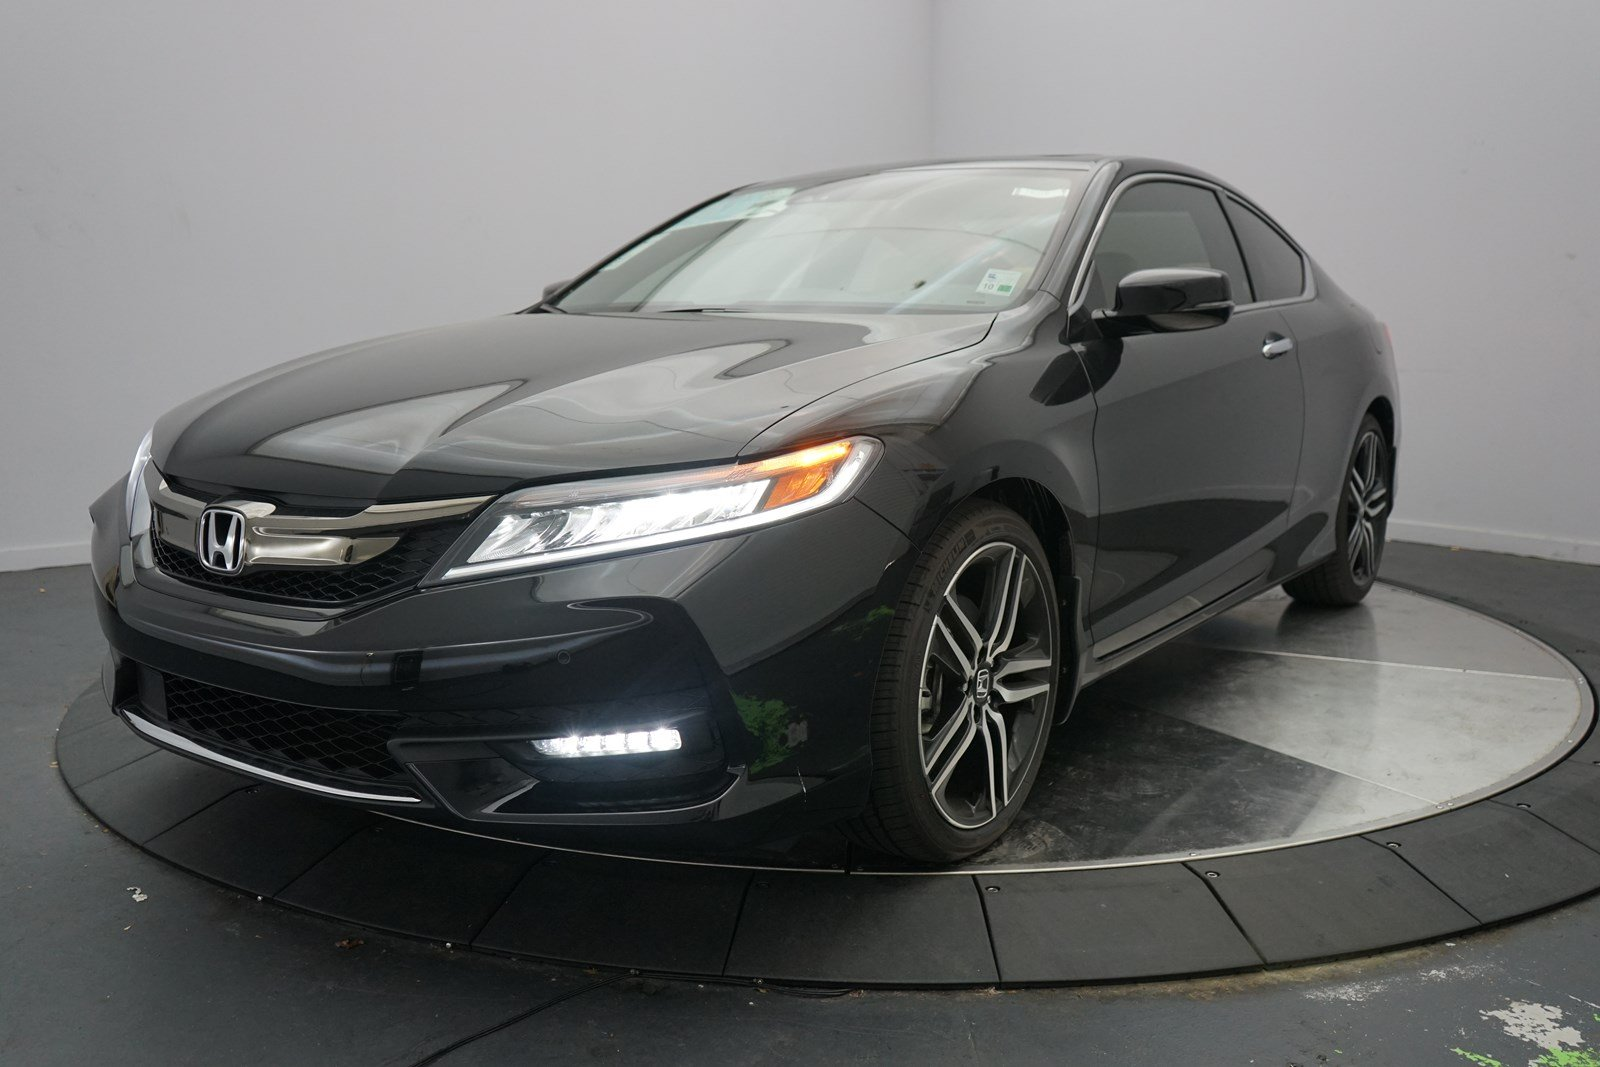 honda accord coupe black rims interesting honda accord. Black Bedroom Furniture Sets. Home Design Ideas